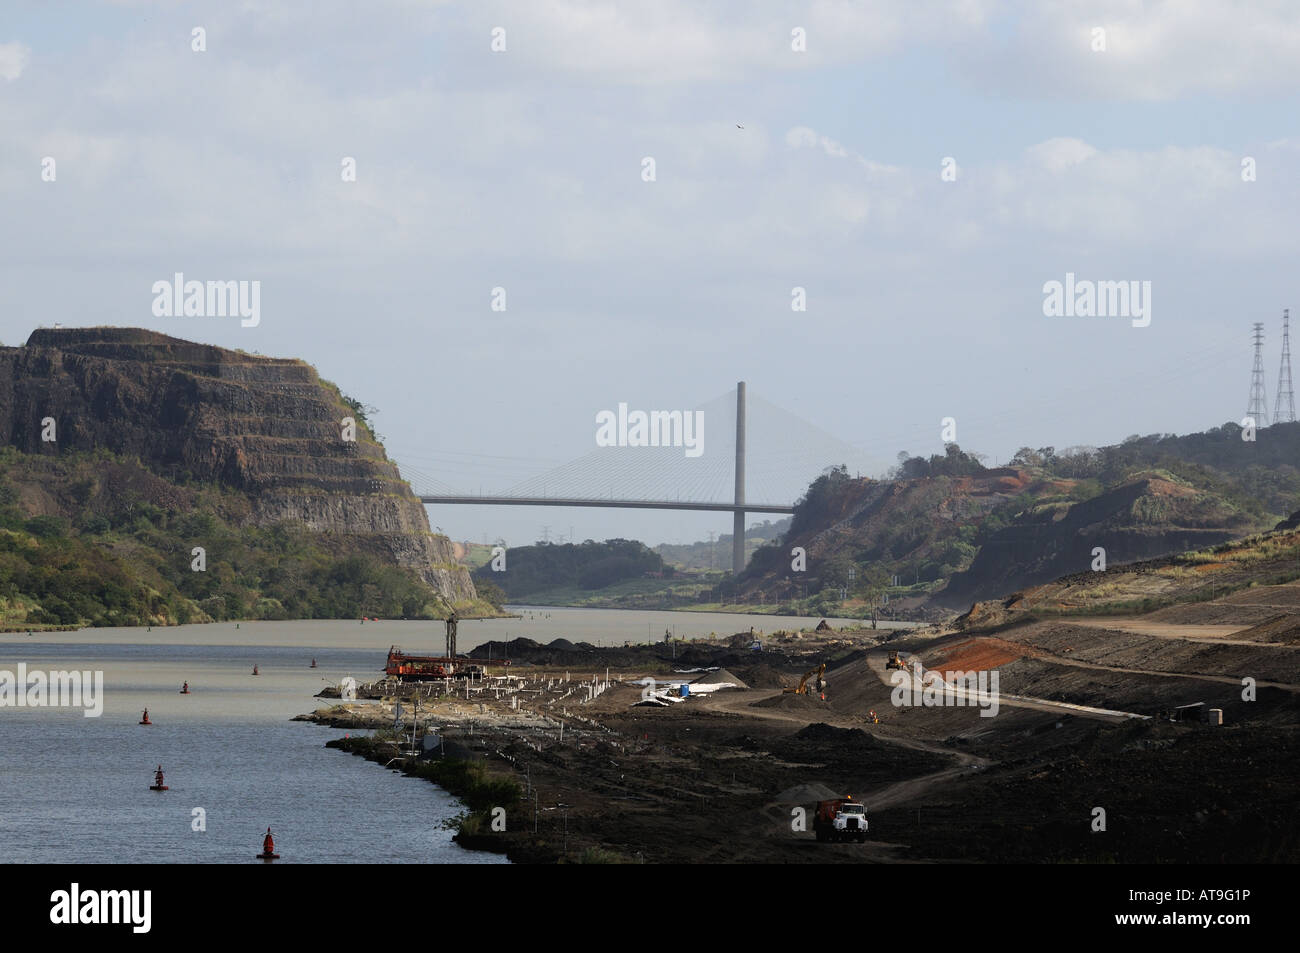 The Galliard Cut of the Panama Canal with Gold Hill on the left and Contractors Hill on the right. - Stock Image